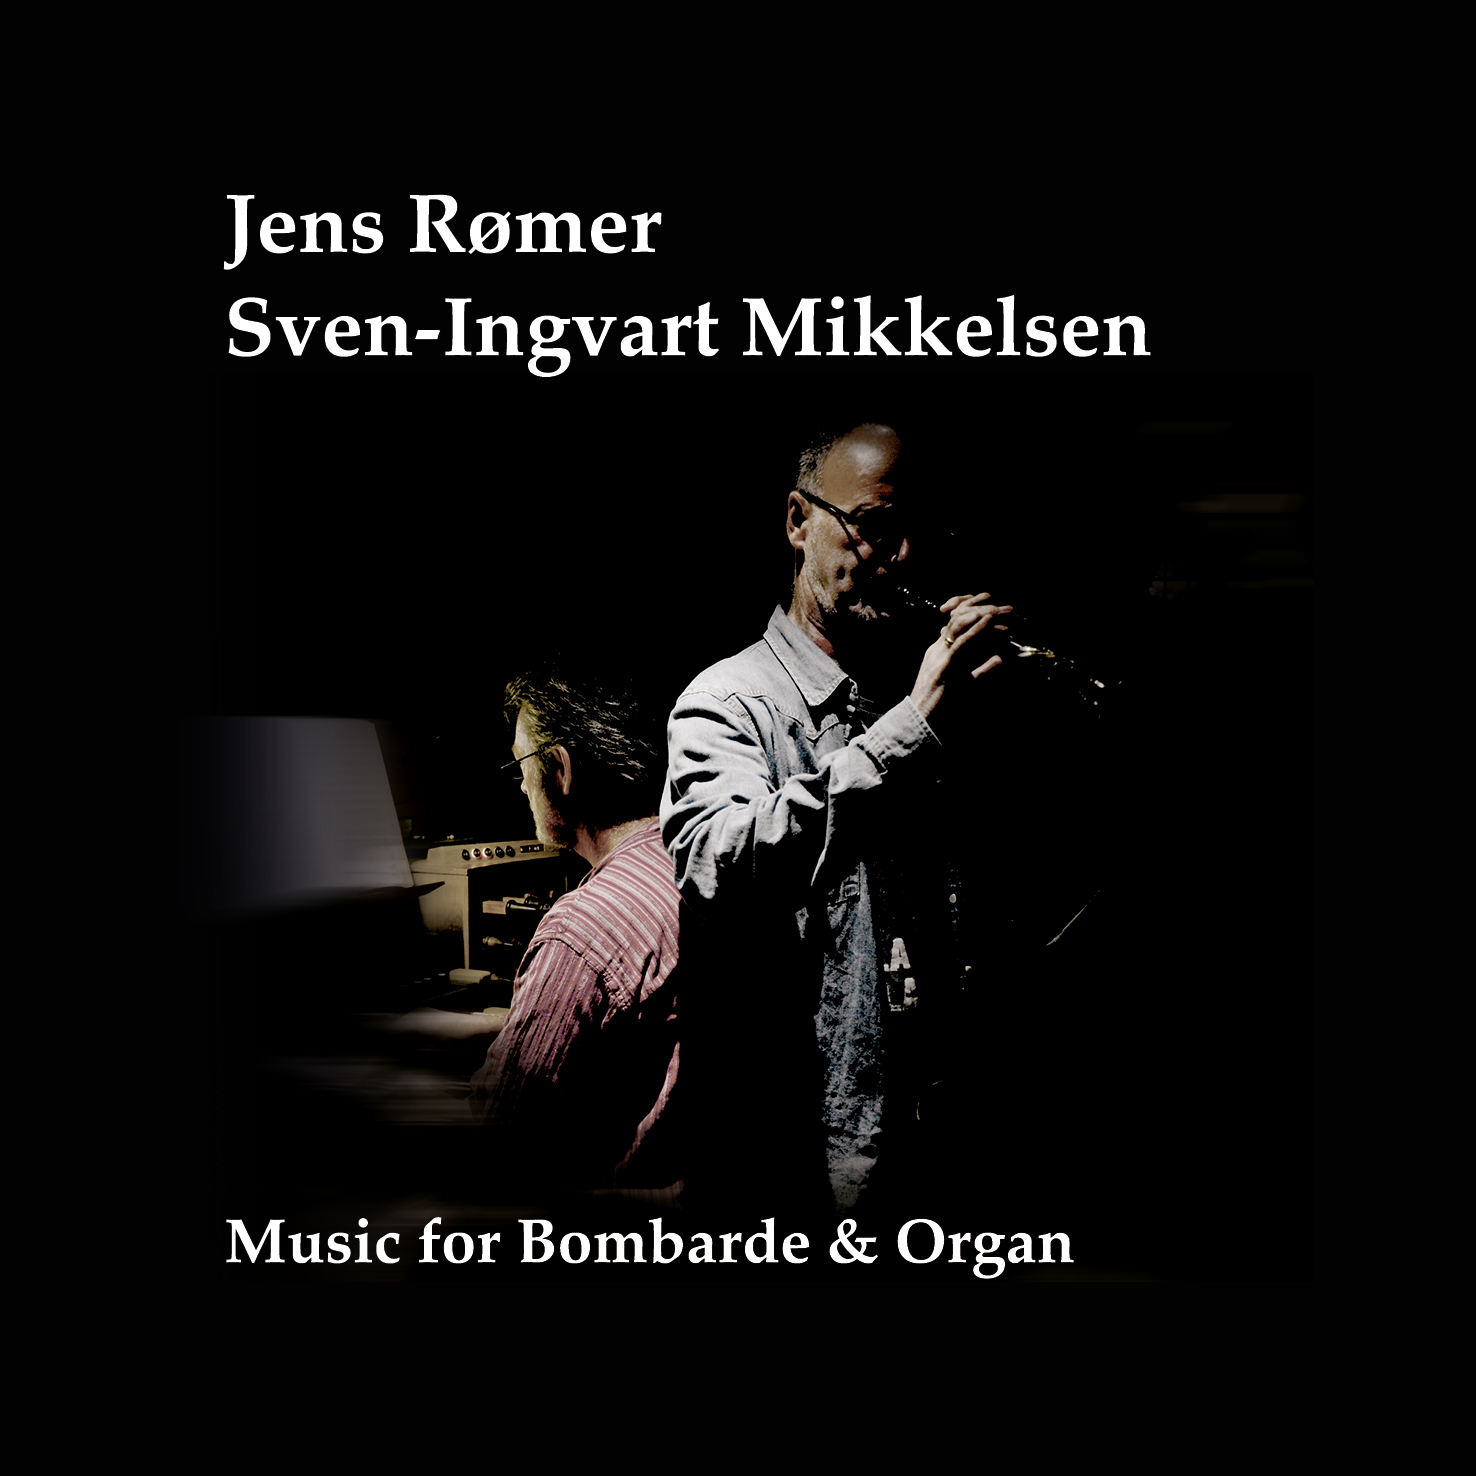 Music for Organ & Bombarde